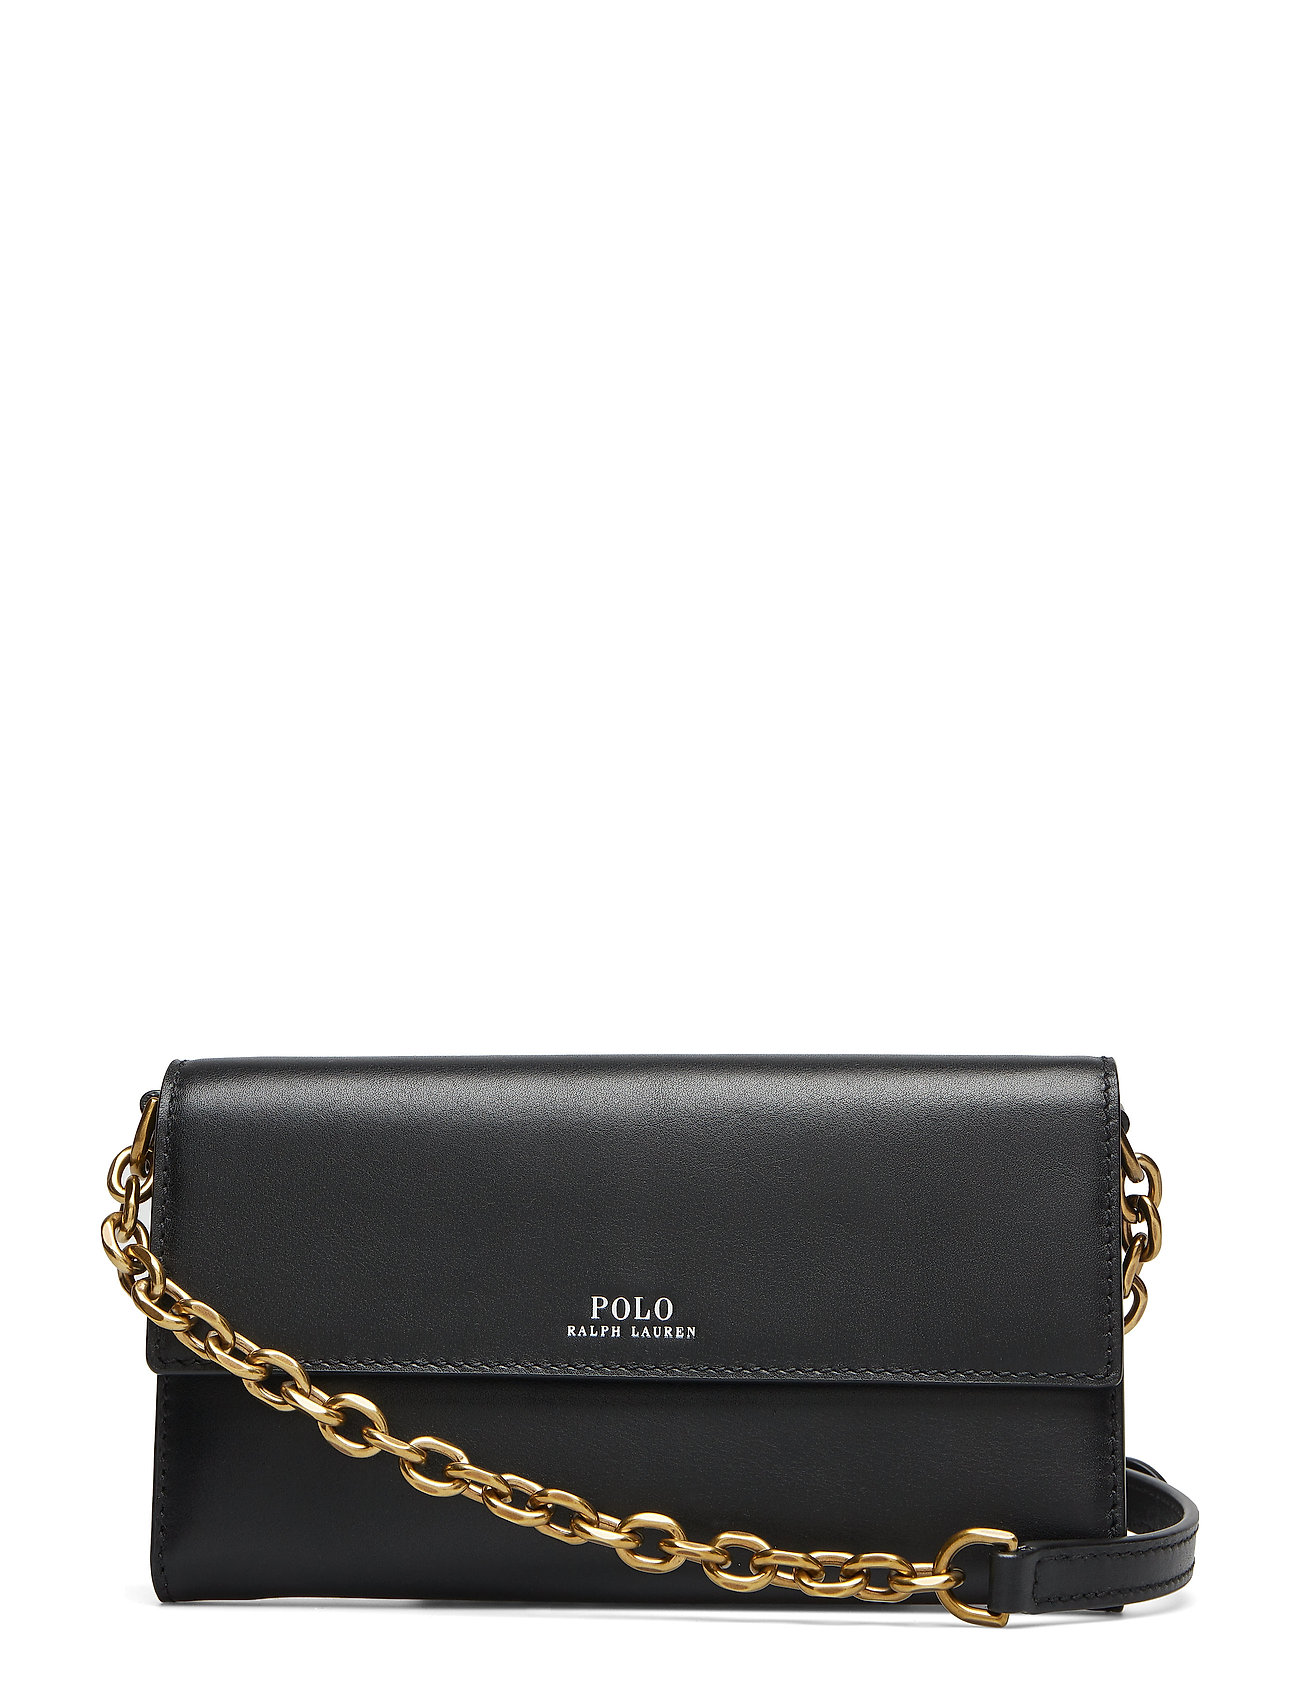 Ralph Chain Leather Small WalletblackPolo Lauren fbIY67gyv